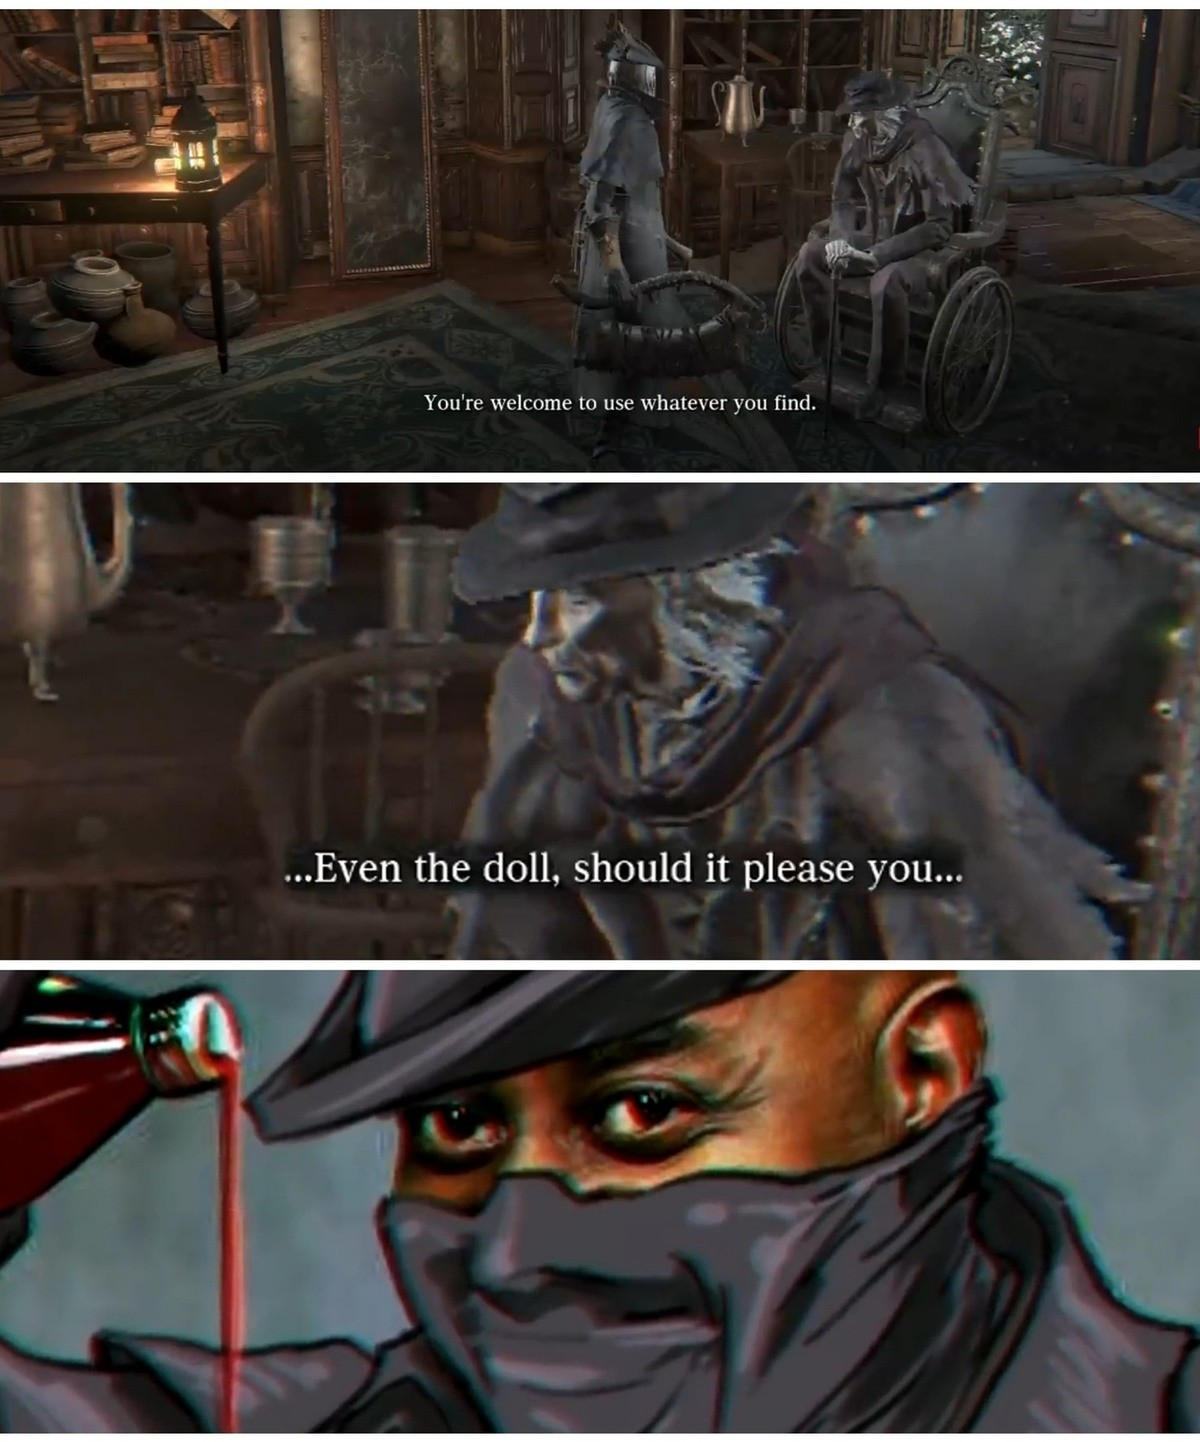 no ty tho. .. Ah, another Bloodborne meme OP. I'm currently at the orphan of kos, hard. it's my fist playthrough, I rolled over most of the bosses, even first tried a bunch o